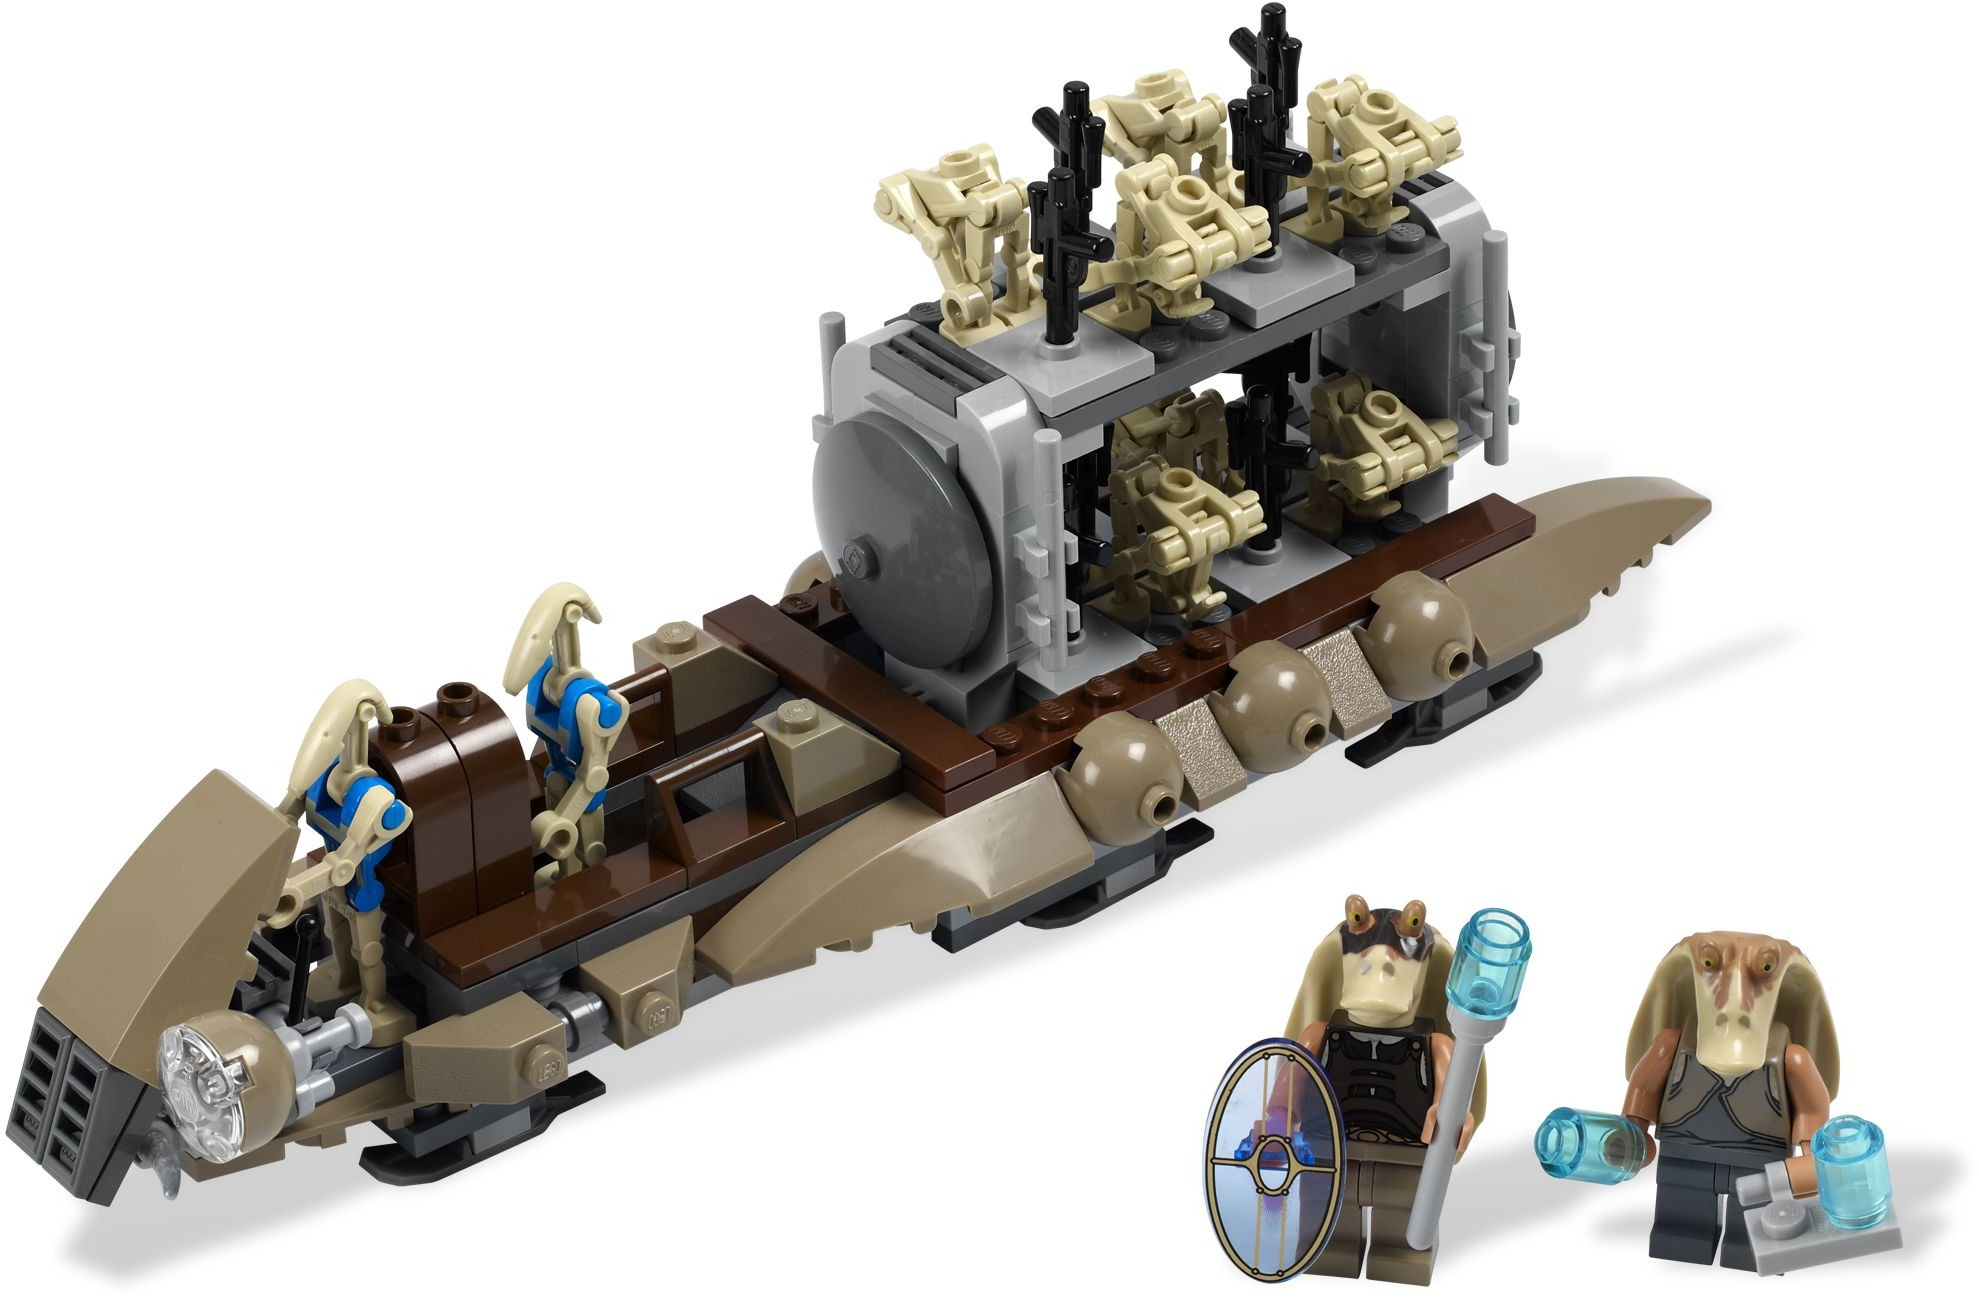 7929 the battle of naboo lego star wars beyond - Image star wars lego ...